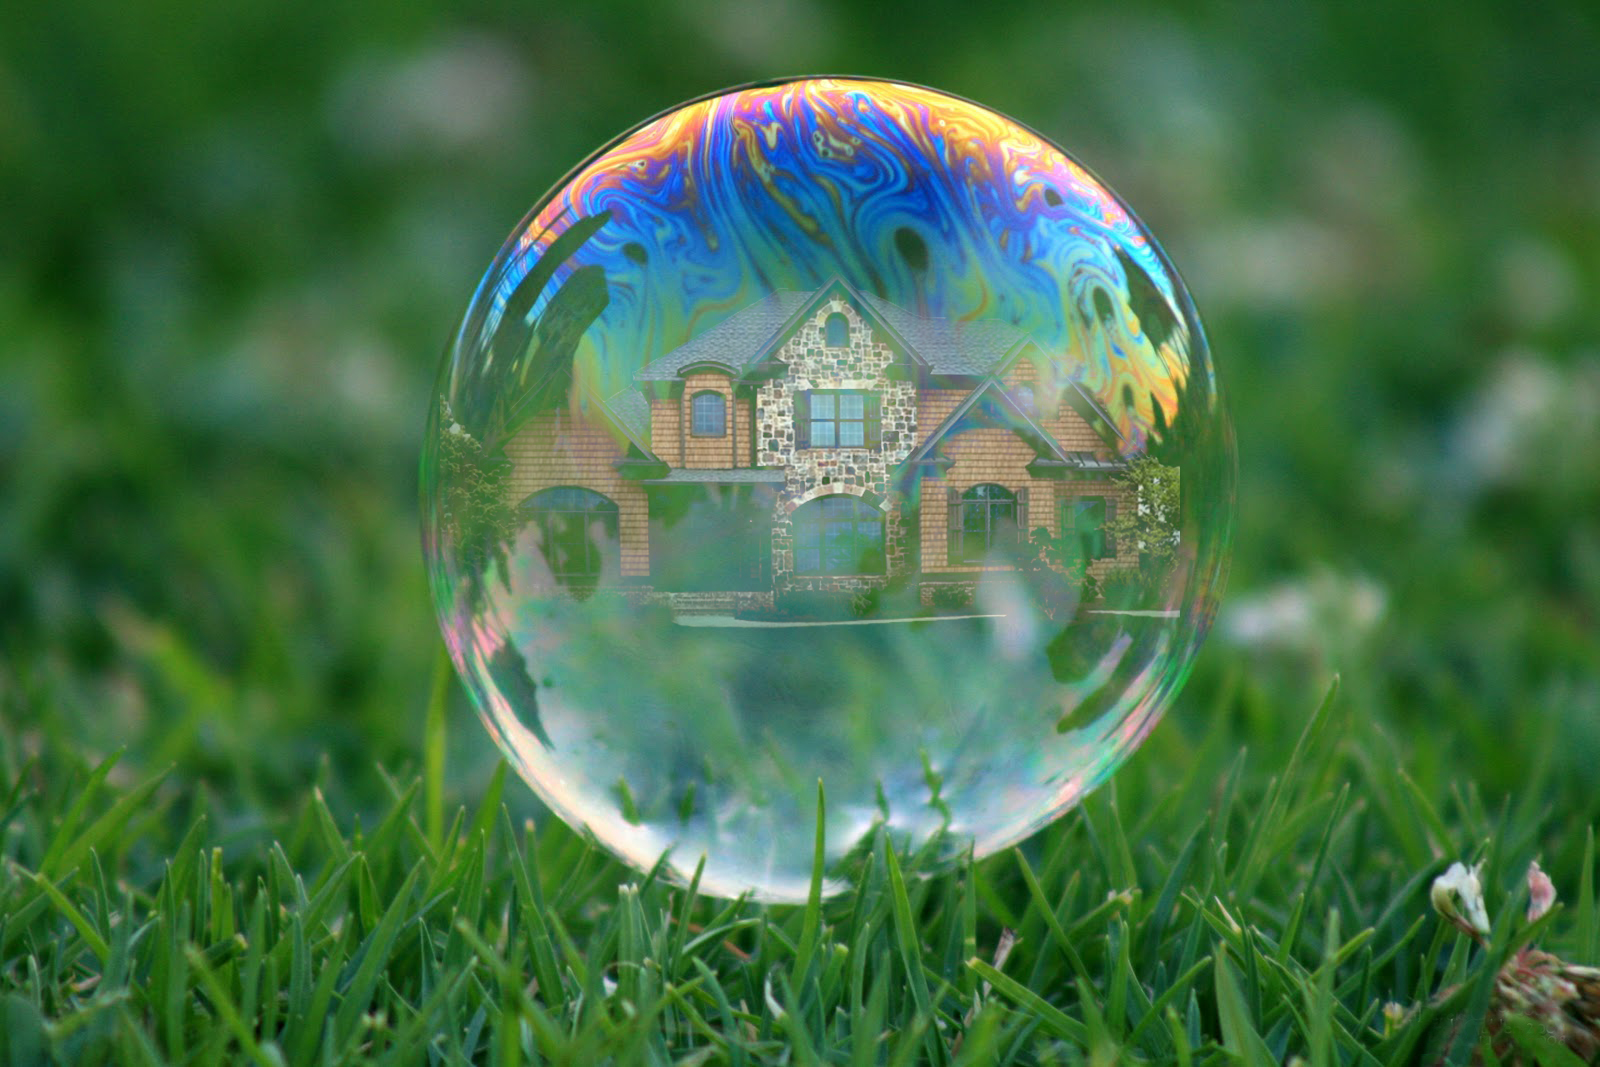 http://www.texaslending.com/wp-content/uploads/2013/07/Housing-Bubble.jpg